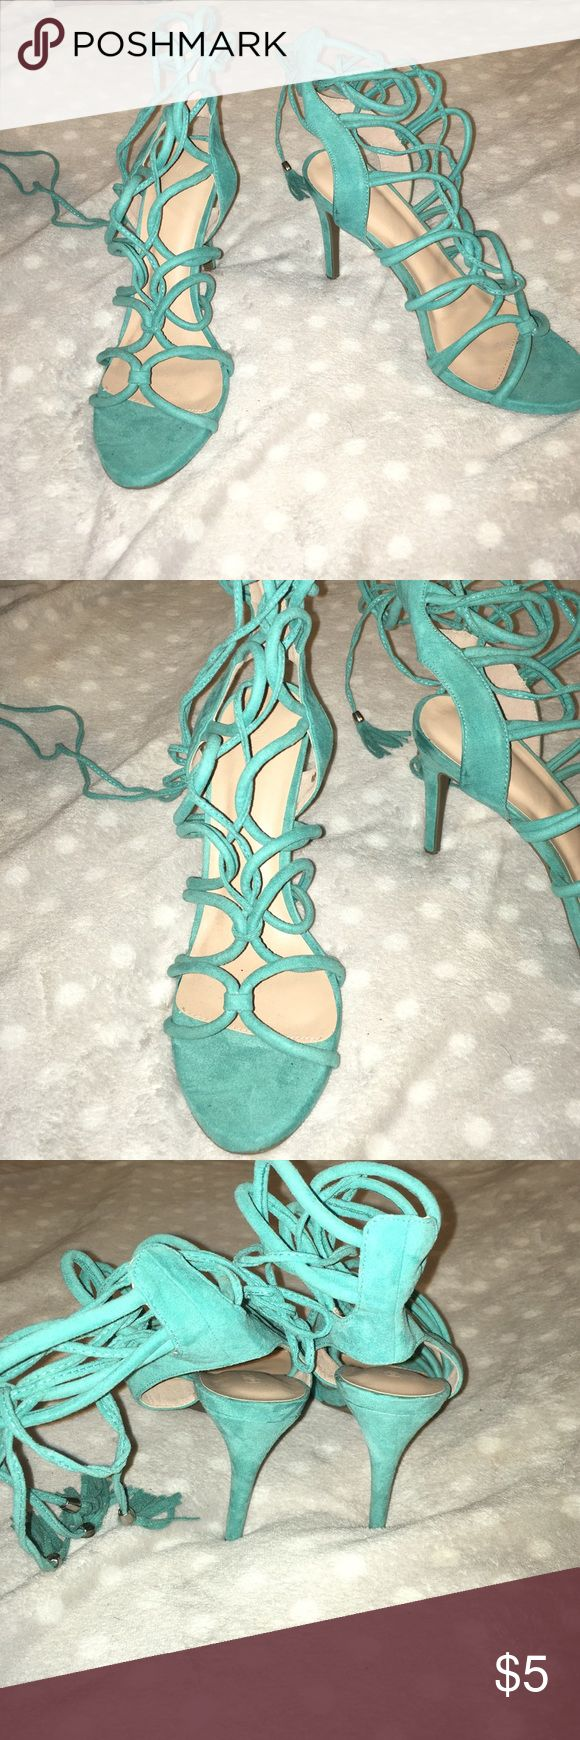 Blue strappy heels Blue strappy heels (never been worn) Shoes Heels